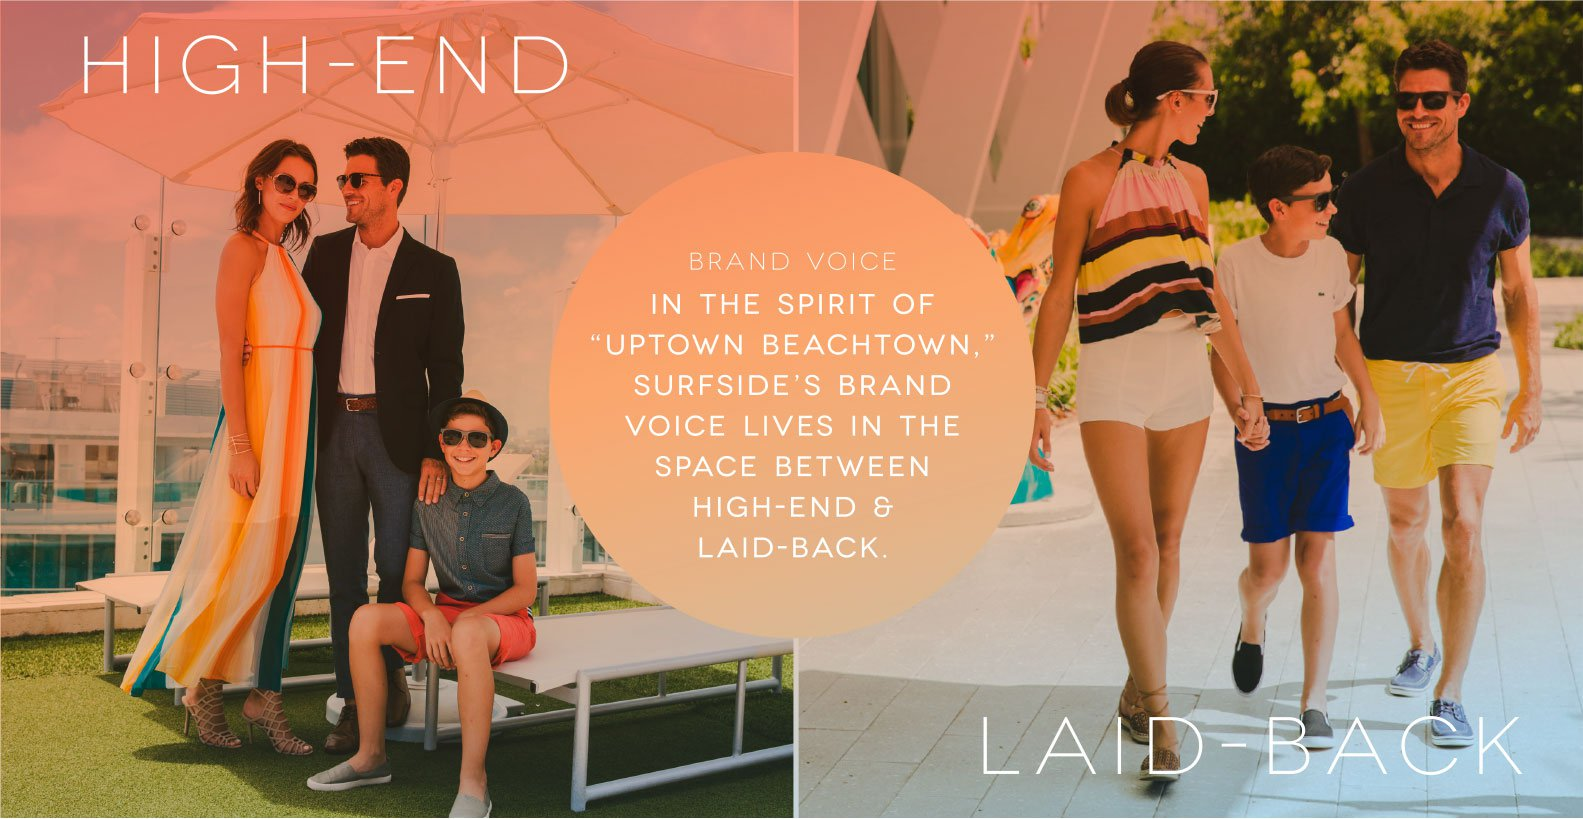 Jacober Creative Identity and Campaign for the Town of Surfside Florida - Photo of family dressed up and dressed down to communicate the high-end and laid-back vibe Surfside offers